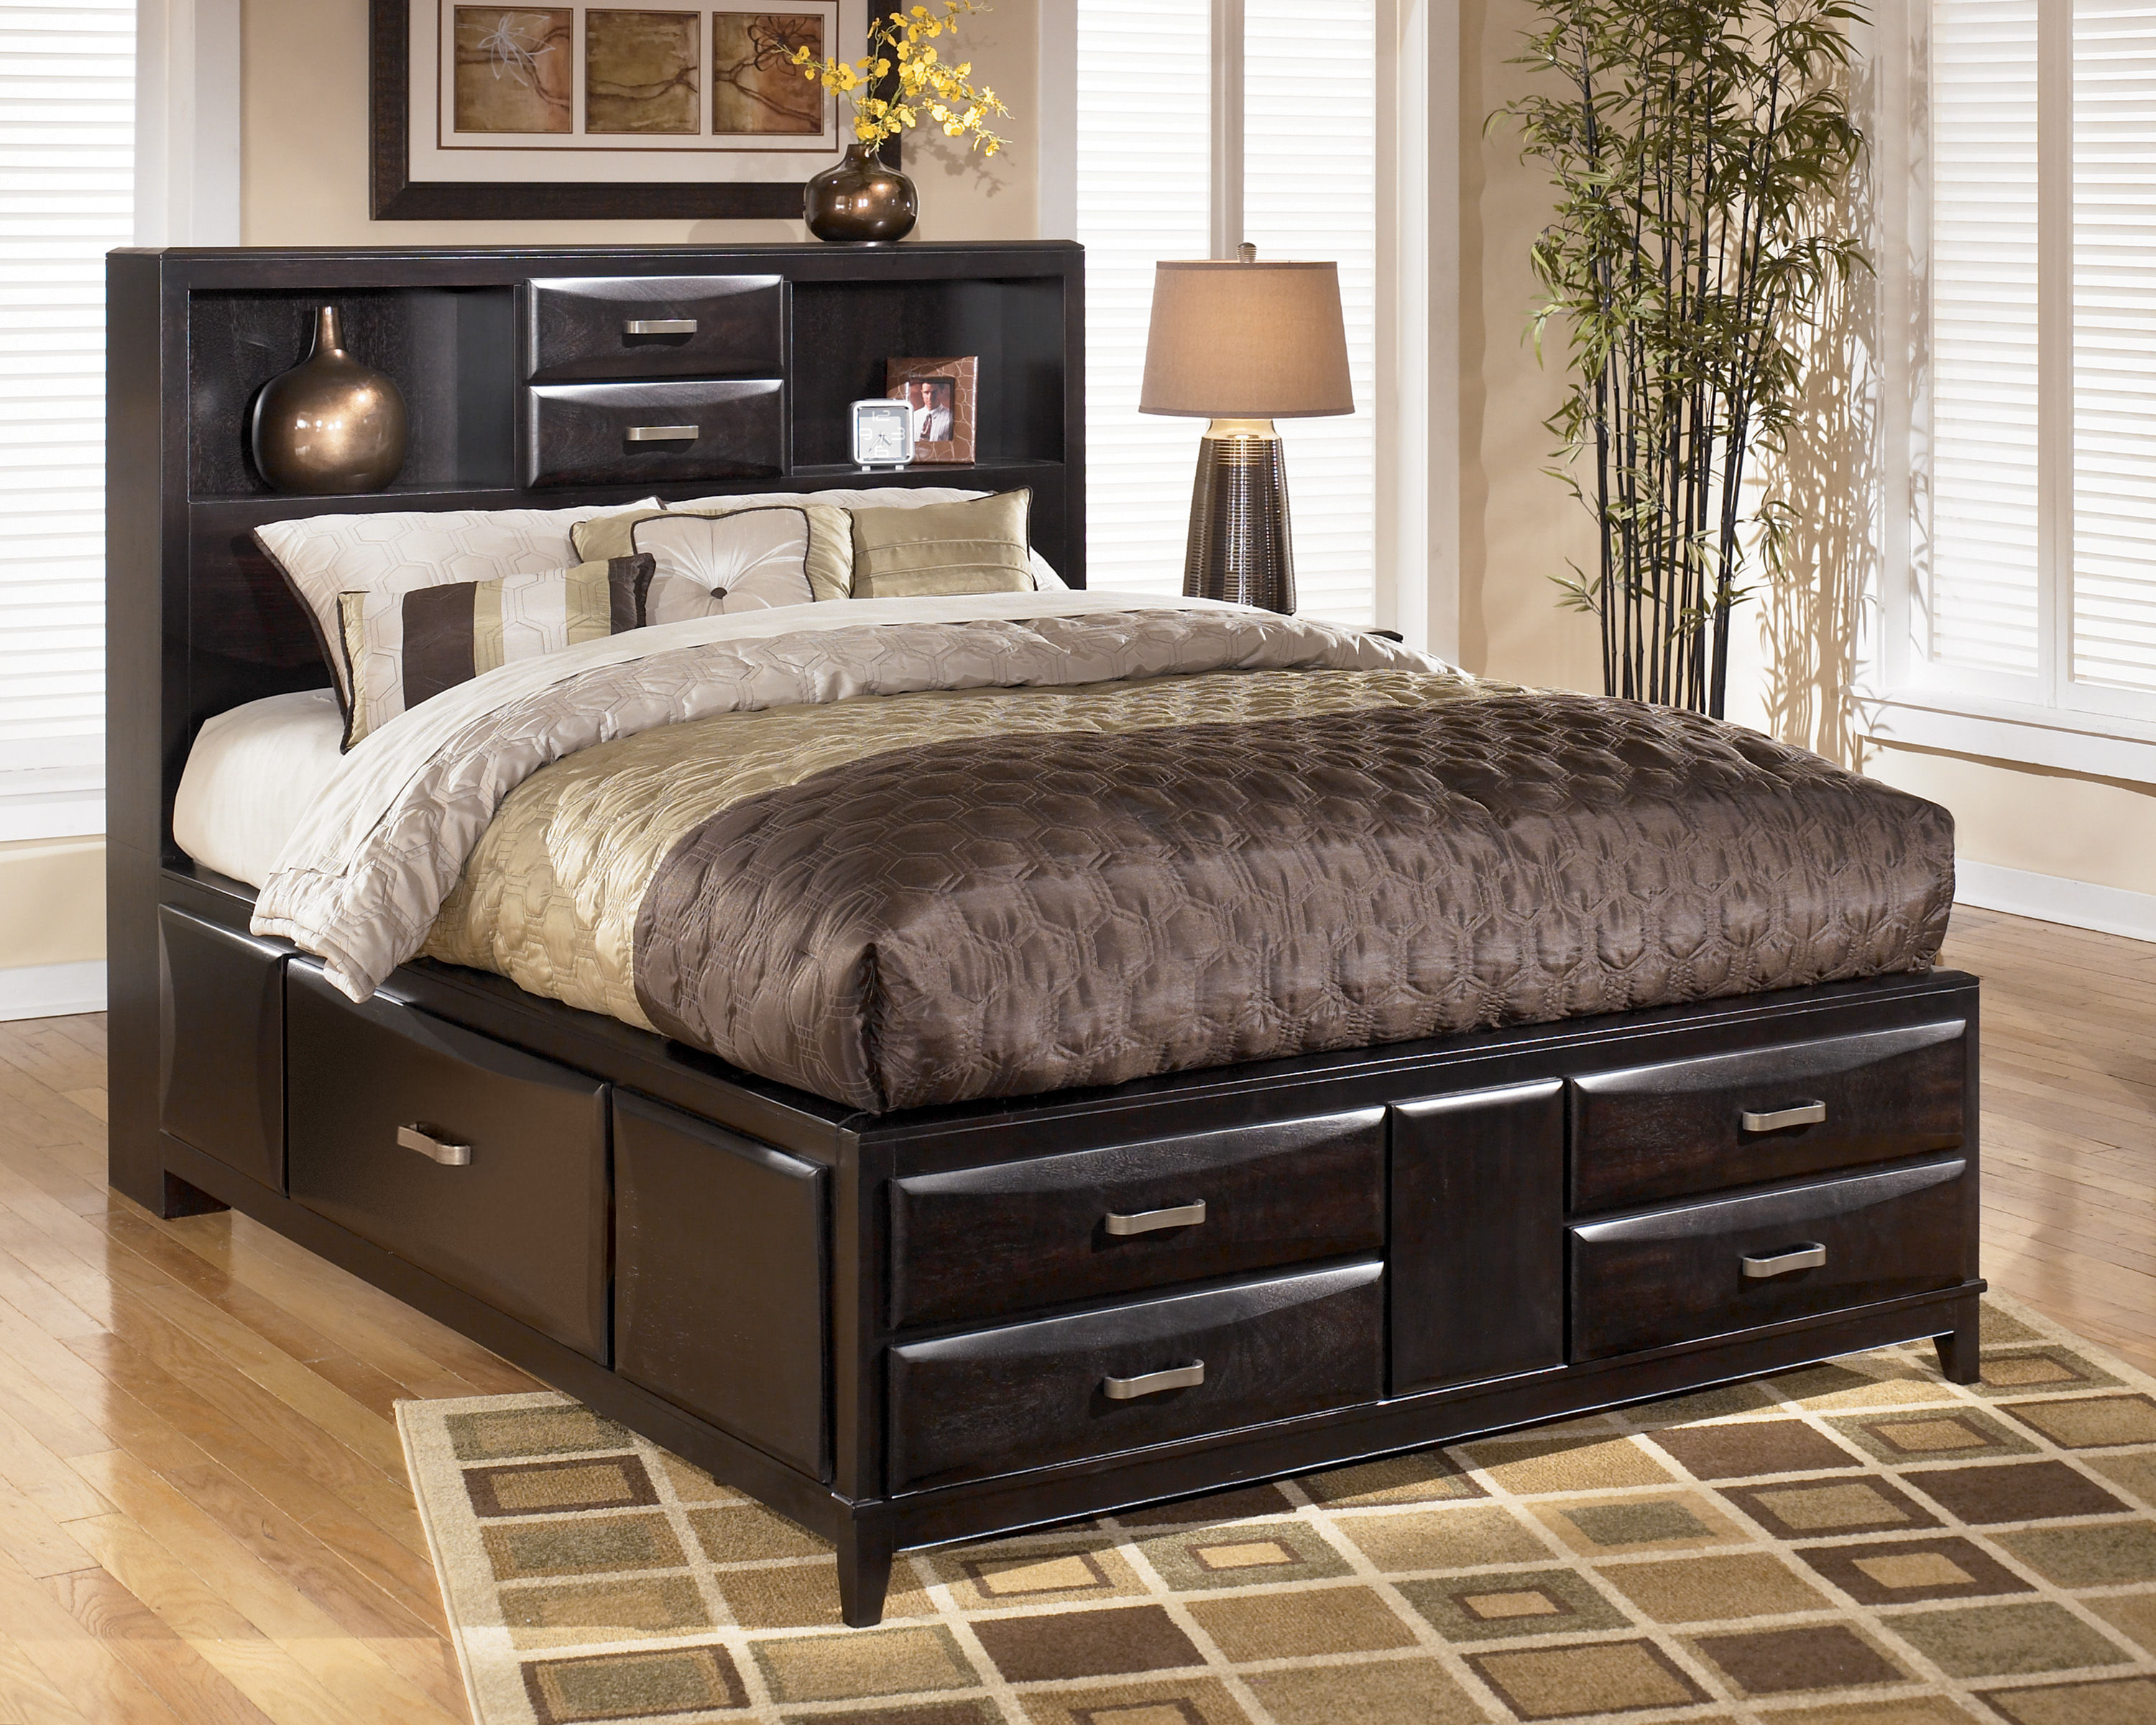 Ashley Furniture Kira King Storage Bed The Classy Home